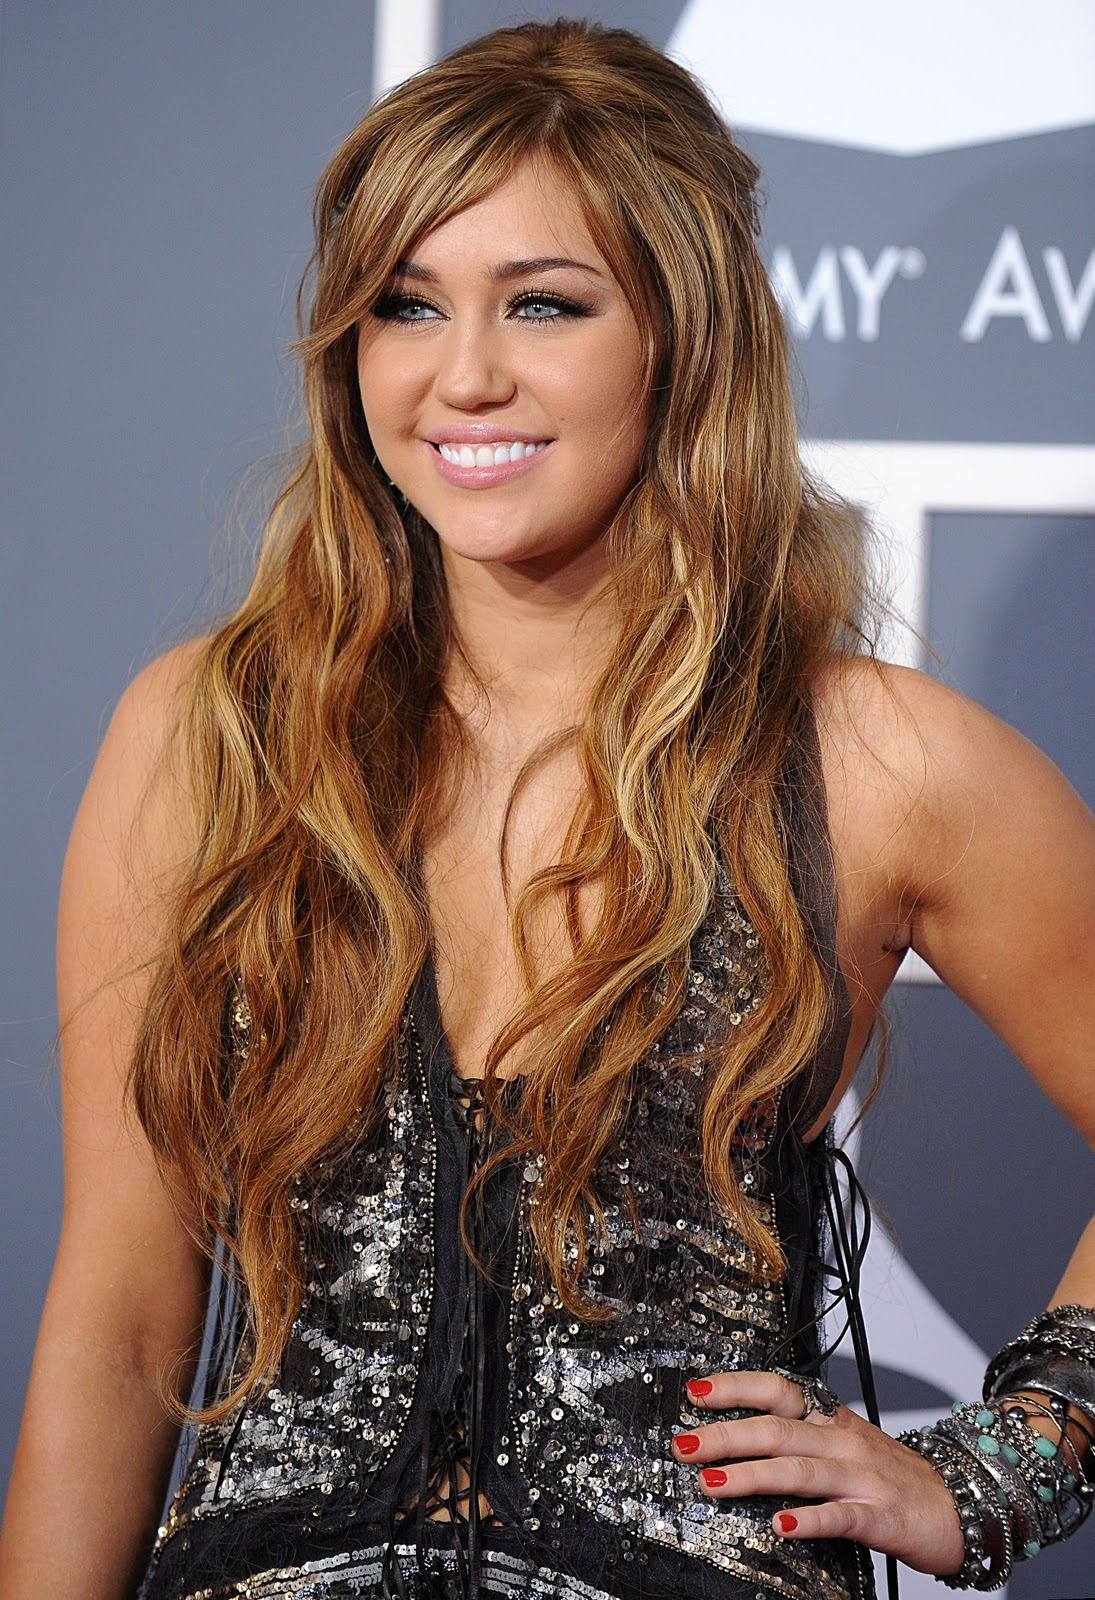 Miley Cyrus Profile & Images 2011 | Celebrities Gossips